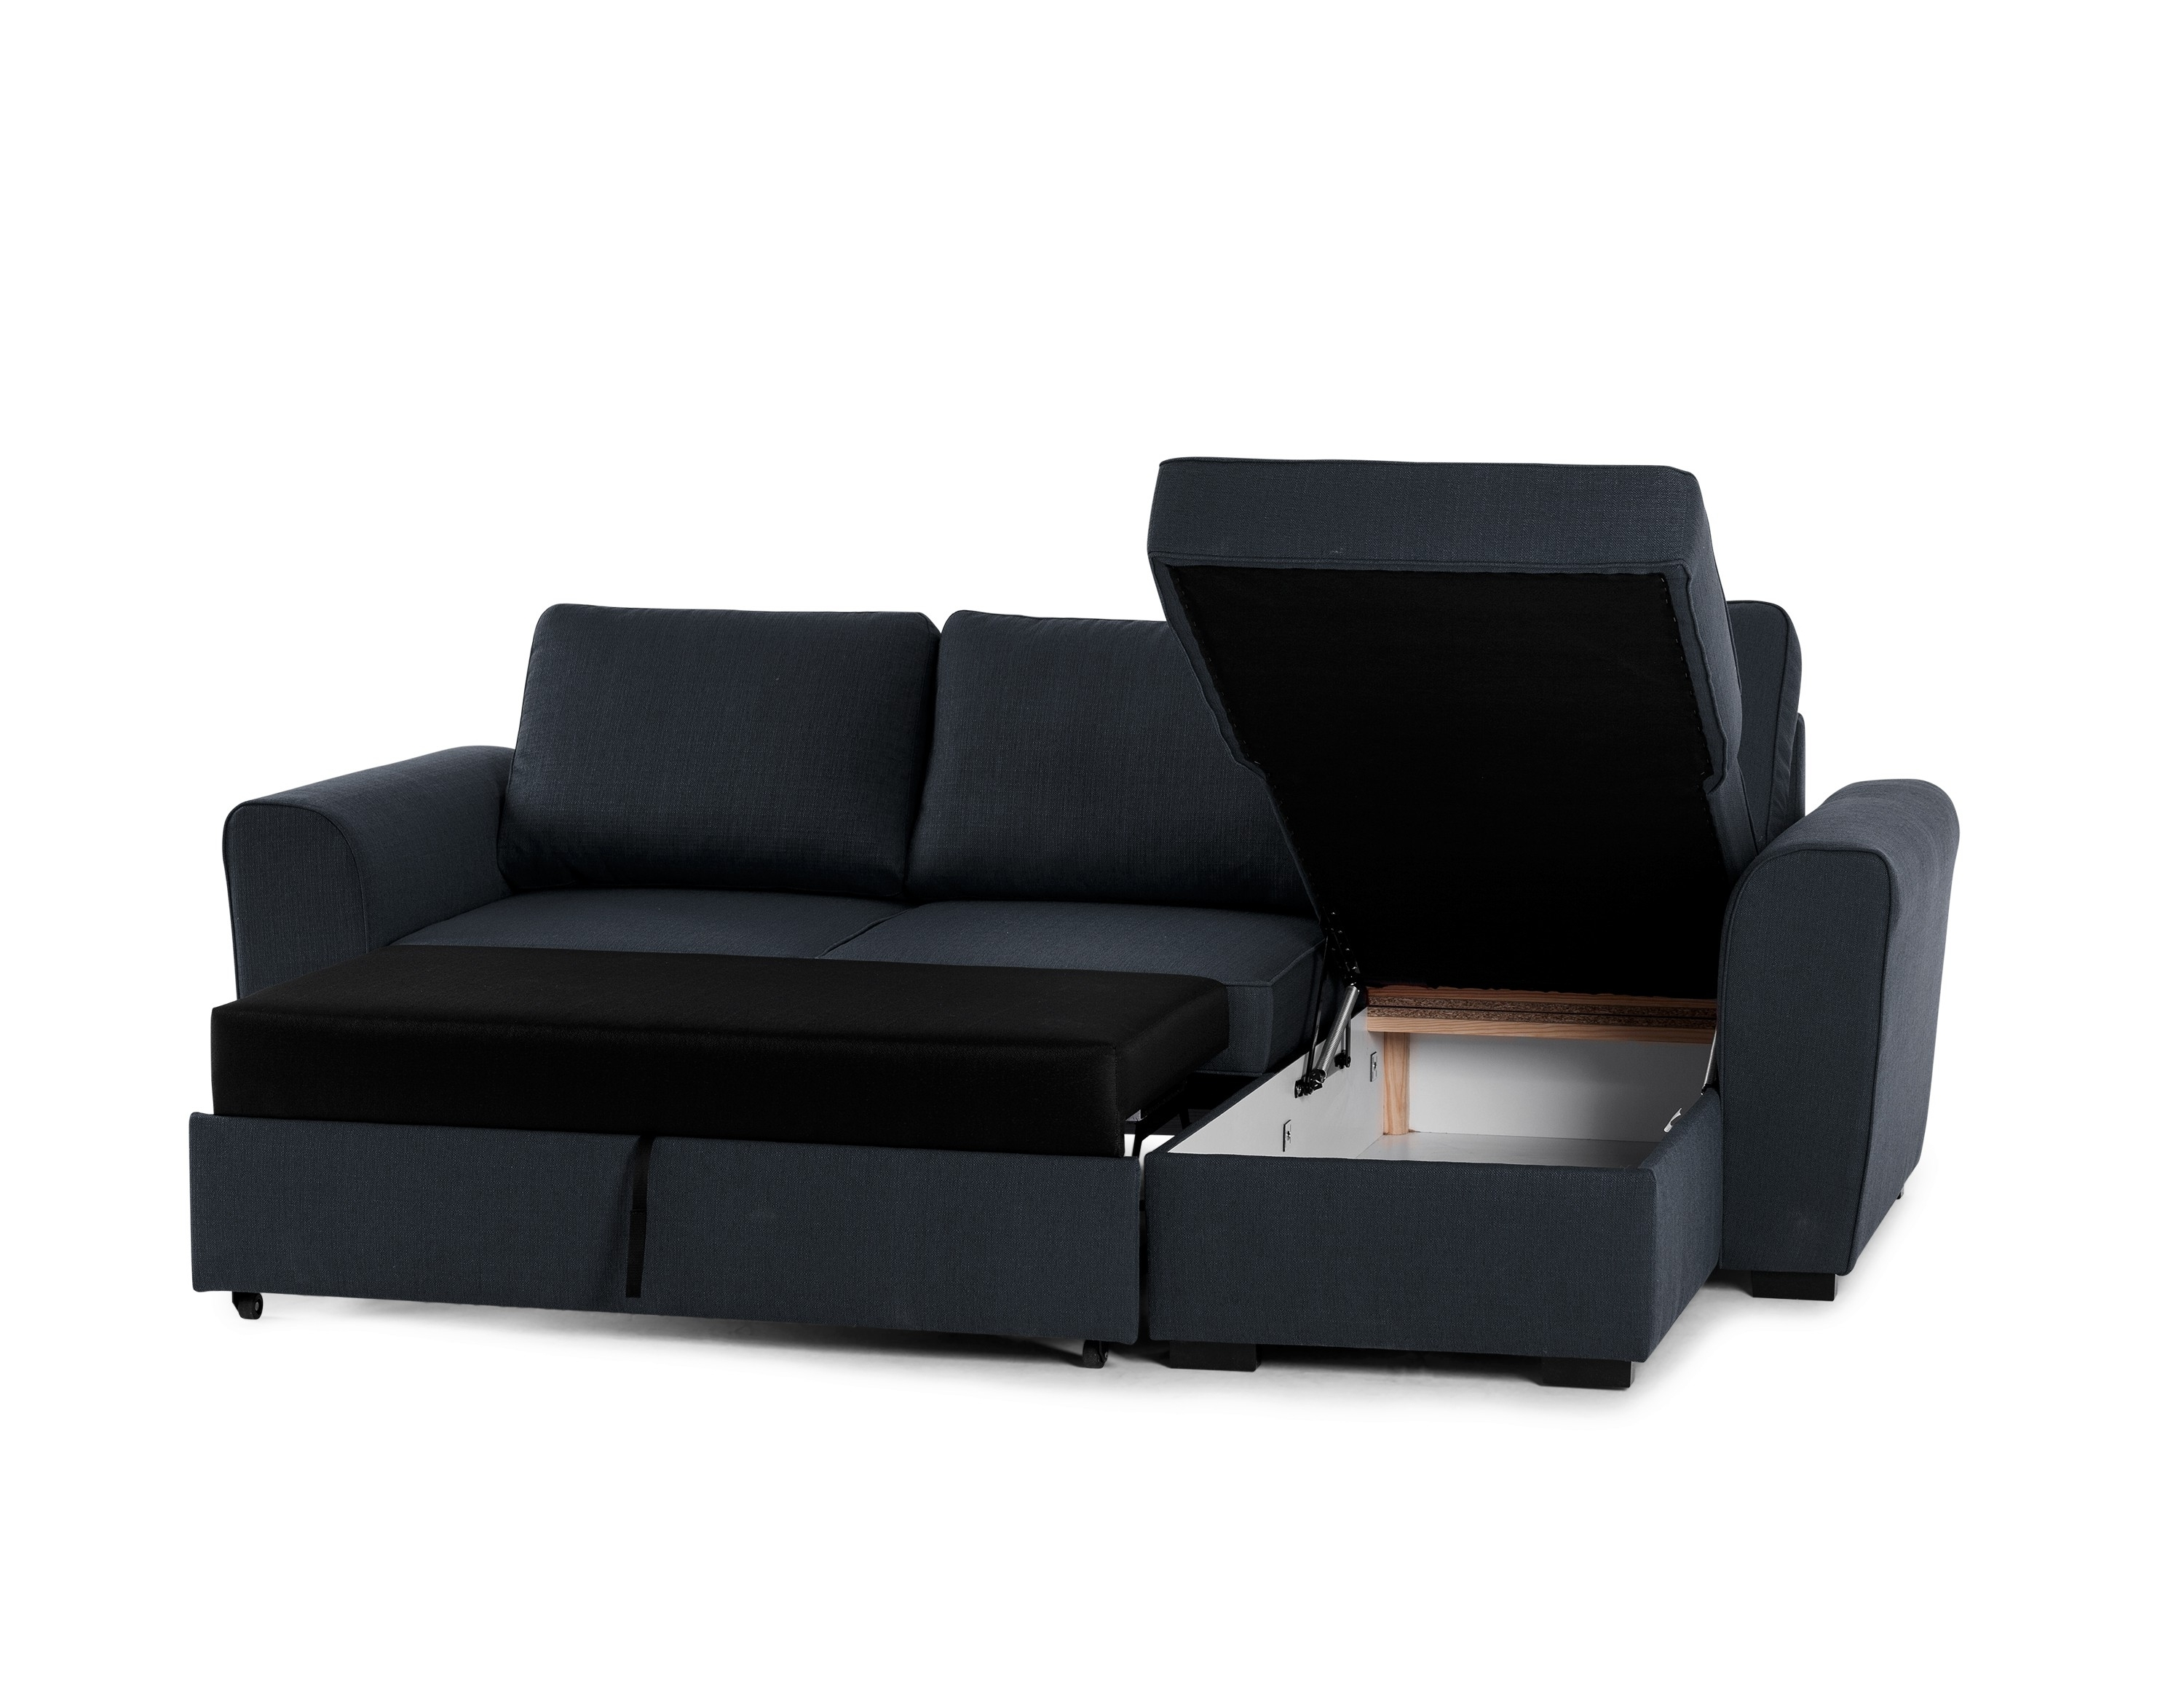 10X8 Sectional Sofas In Most Up To Date Sofa : Stunning Sectional Sofa Bed Apk 27801 2S 10X8 Cropafhs Pdp (View 13 of 15)